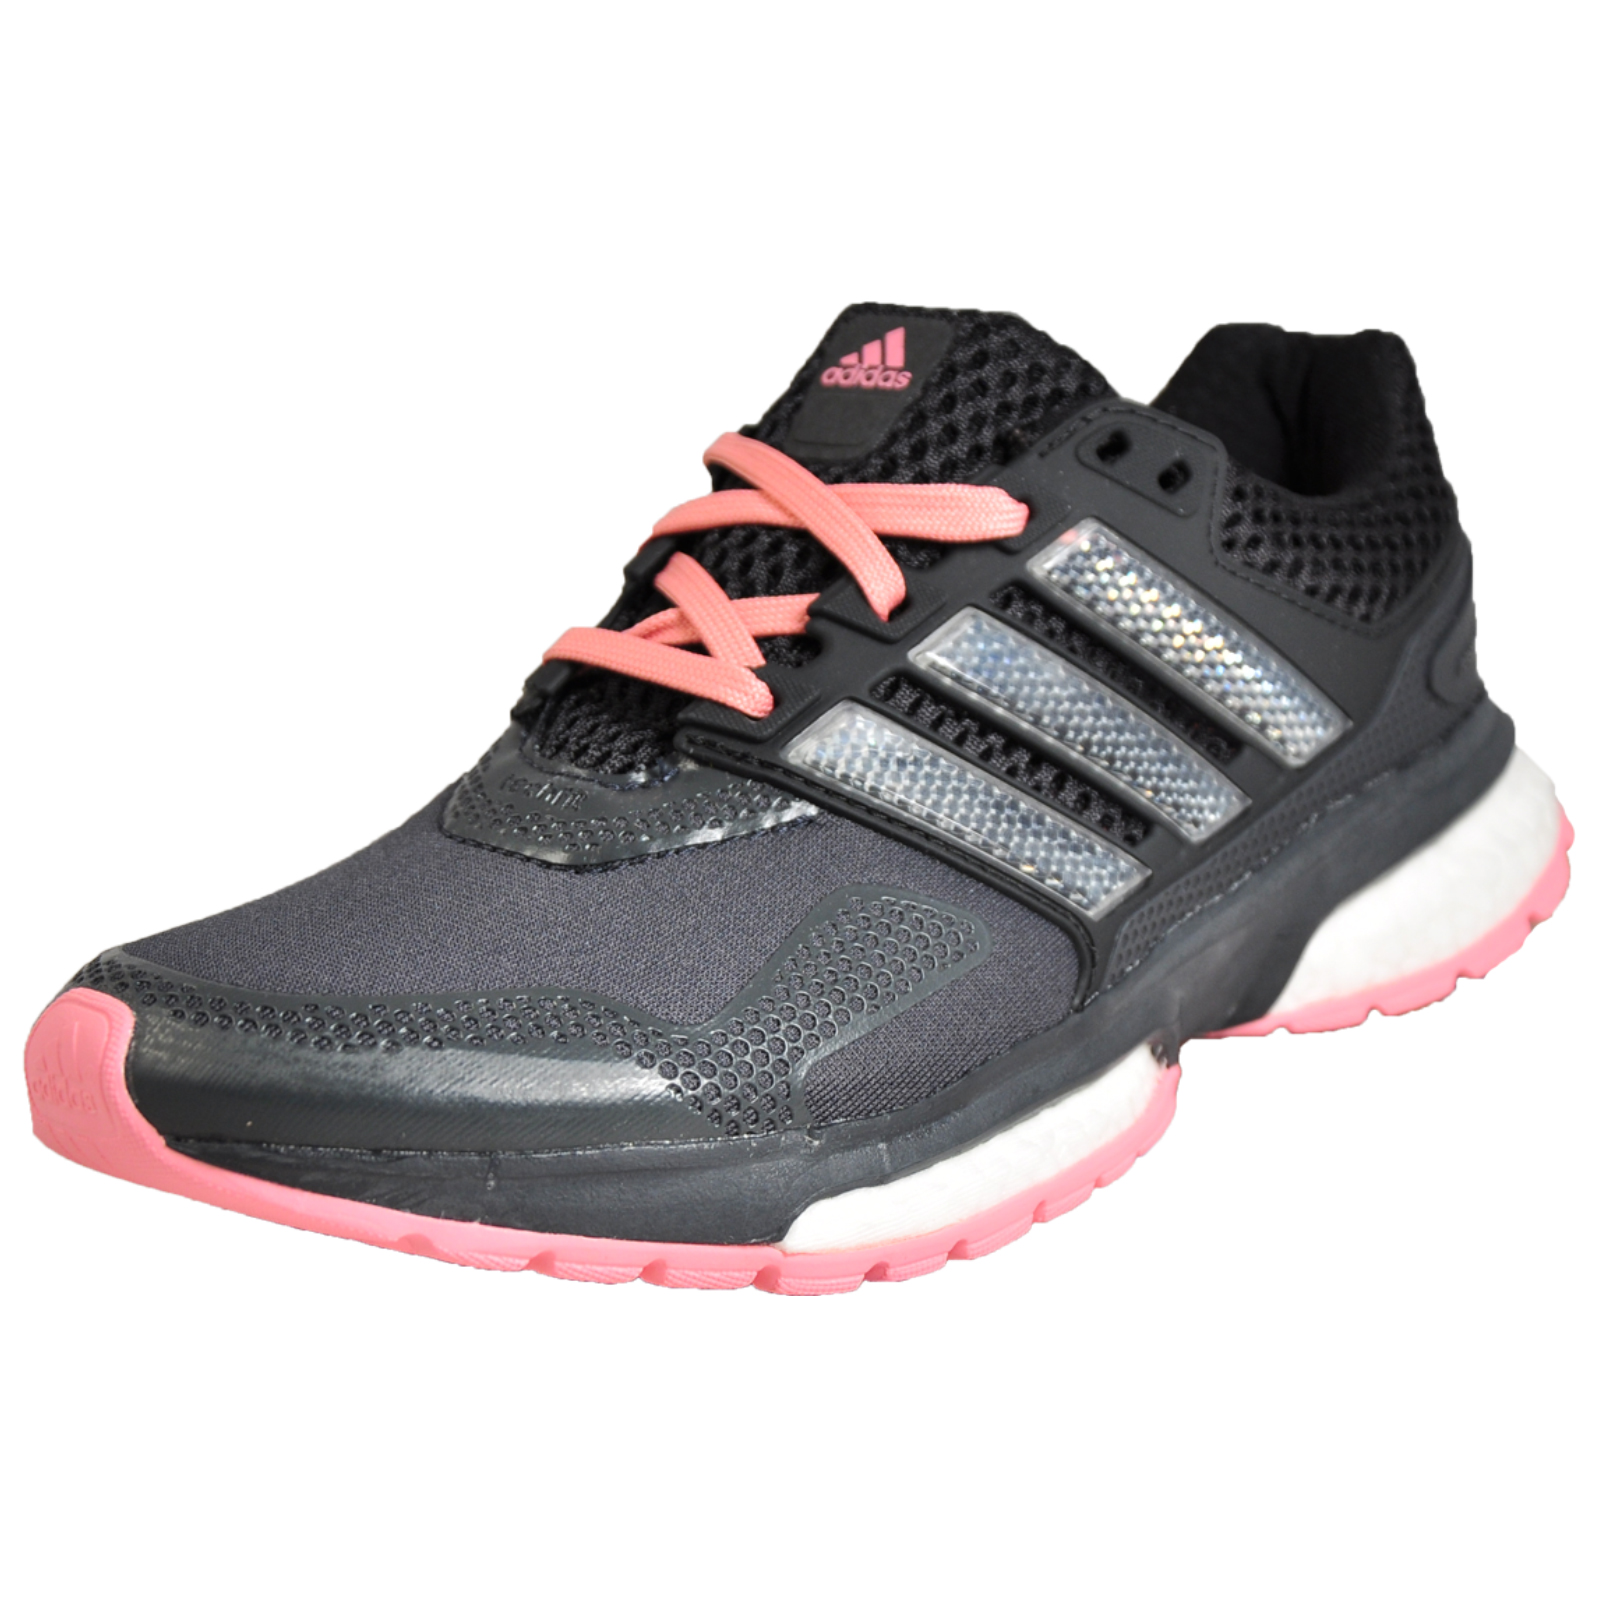 35090e32c9c84 Details about Adidas Response Boost 2 Techfit Women s Superior Running Shoe  Fitness Trainers